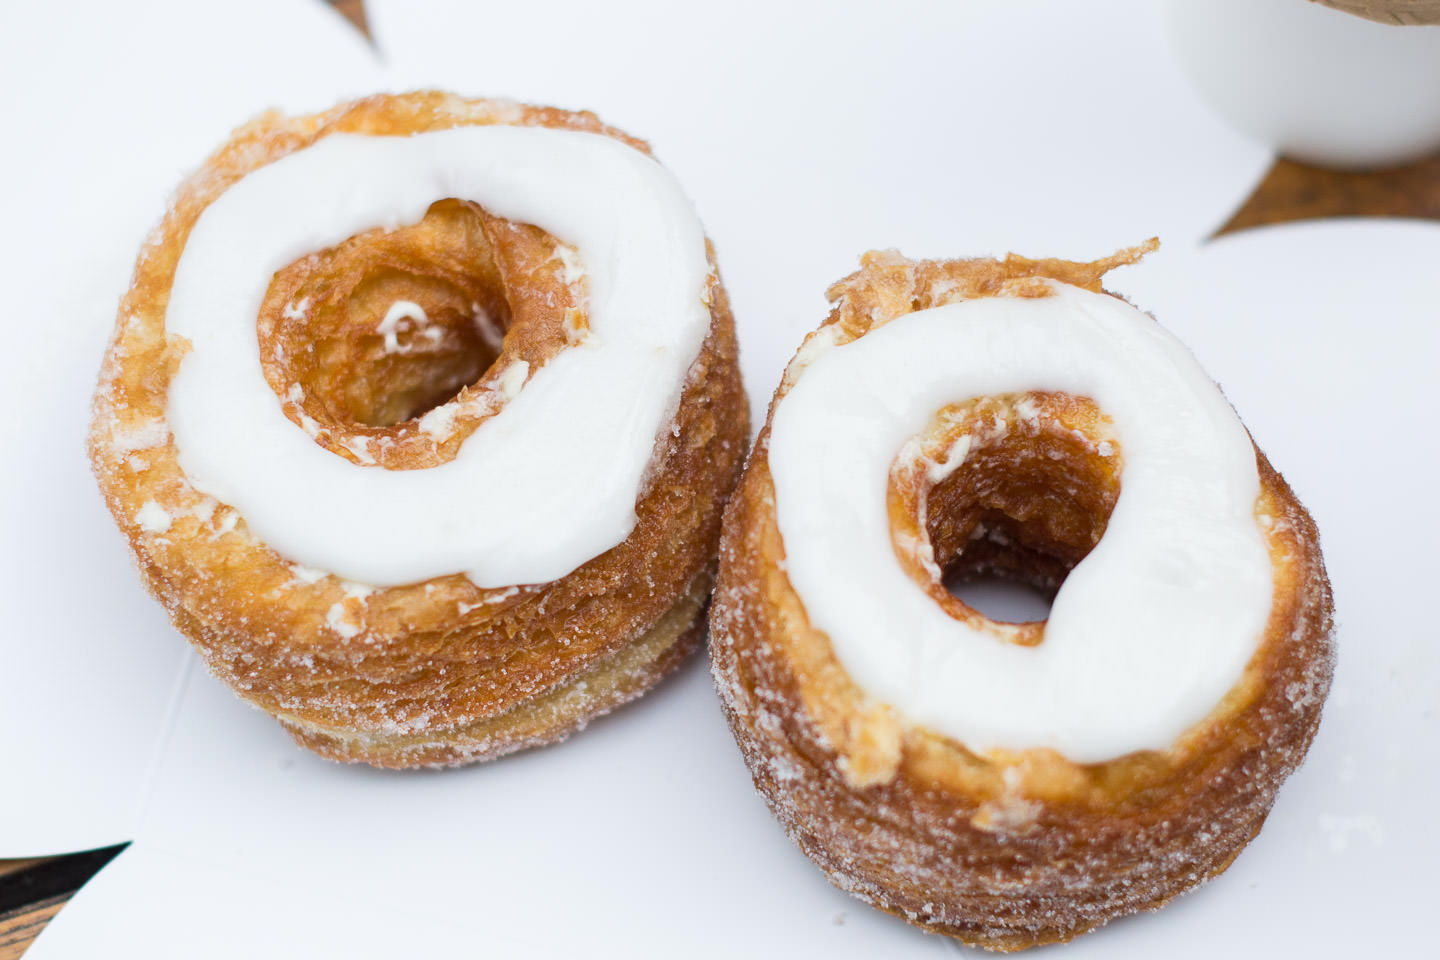 Blog-mode-And-The-City-Lifestyle-5-petites-choses-103-cronut